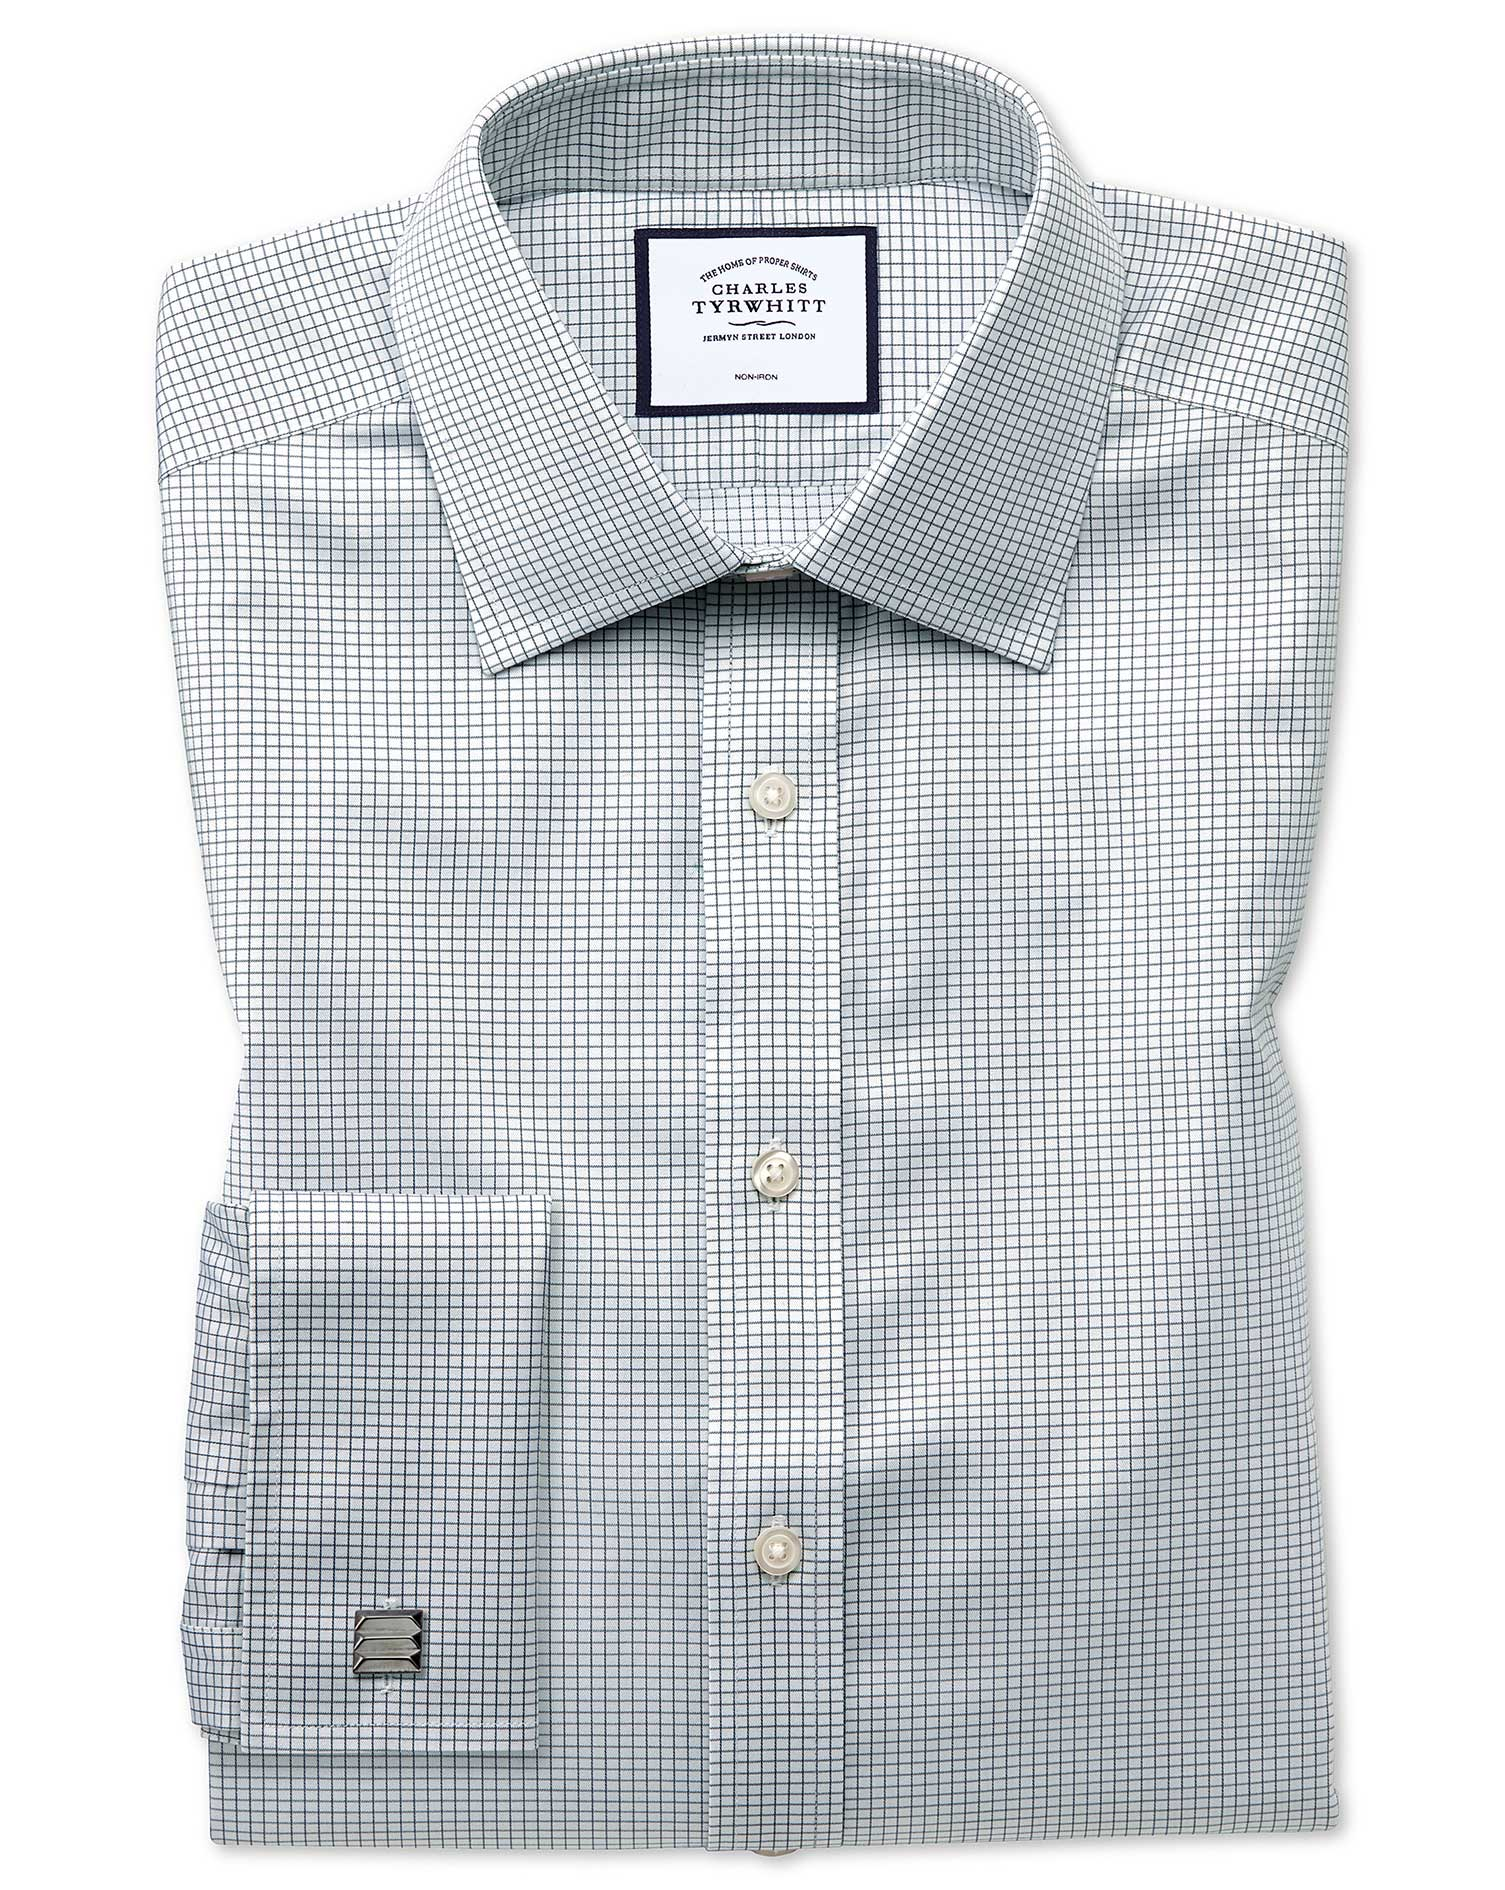 Slim Fit Non-Iron Twill Mini Grid Check Grey Cotton Formal Shirt Single Cuff Size 16.5/33 by Charles